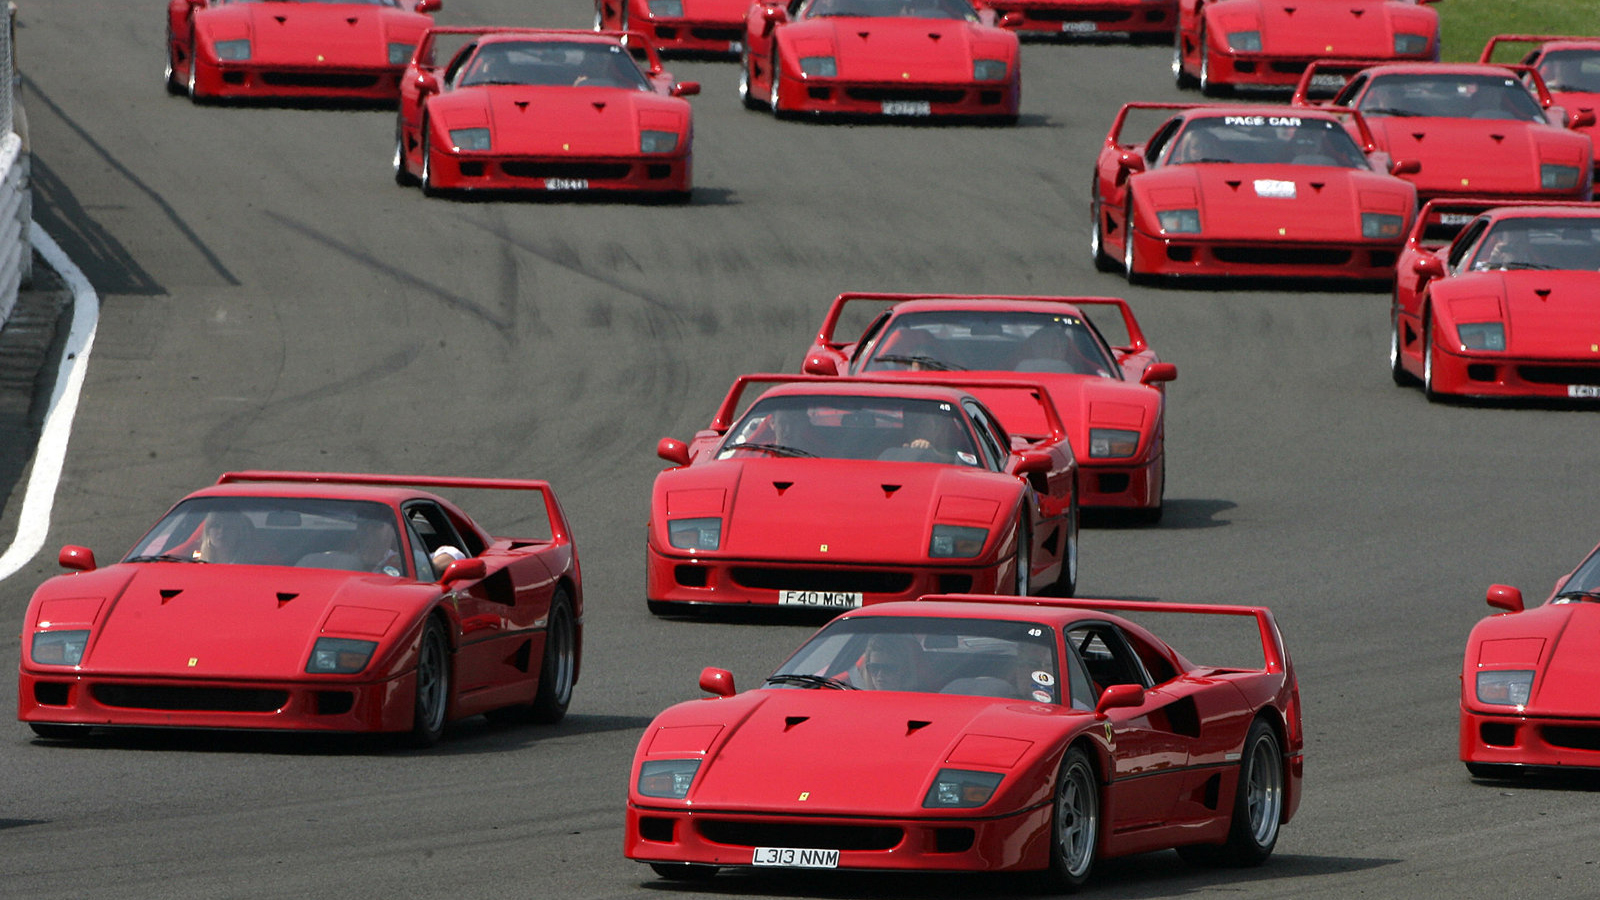 ... | Ferrari F40 Test drive Review |Ferrari F40 Wallpaper